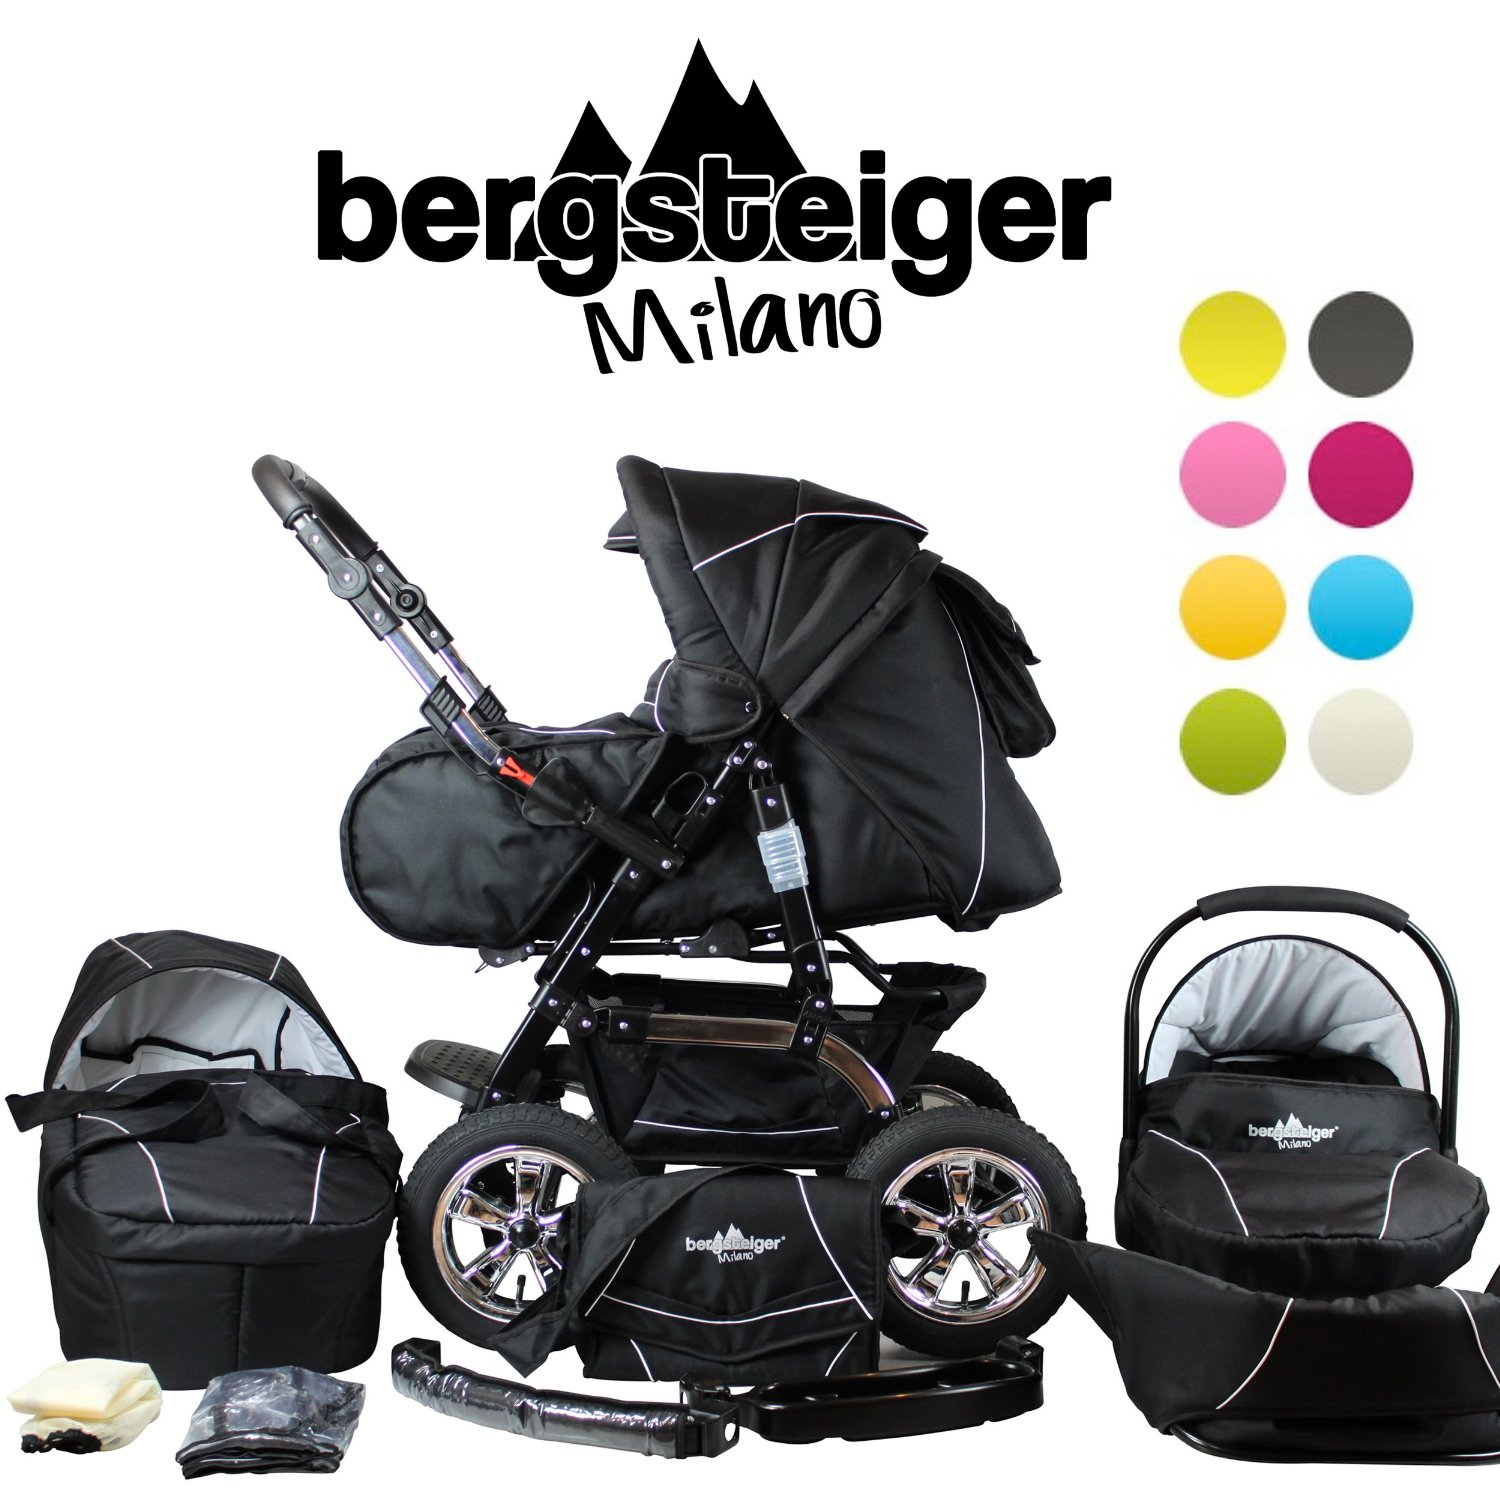 bergsteiger milano kinderwagen test 2018. Black Bedroom Furniture Sets. Home Design Ideas